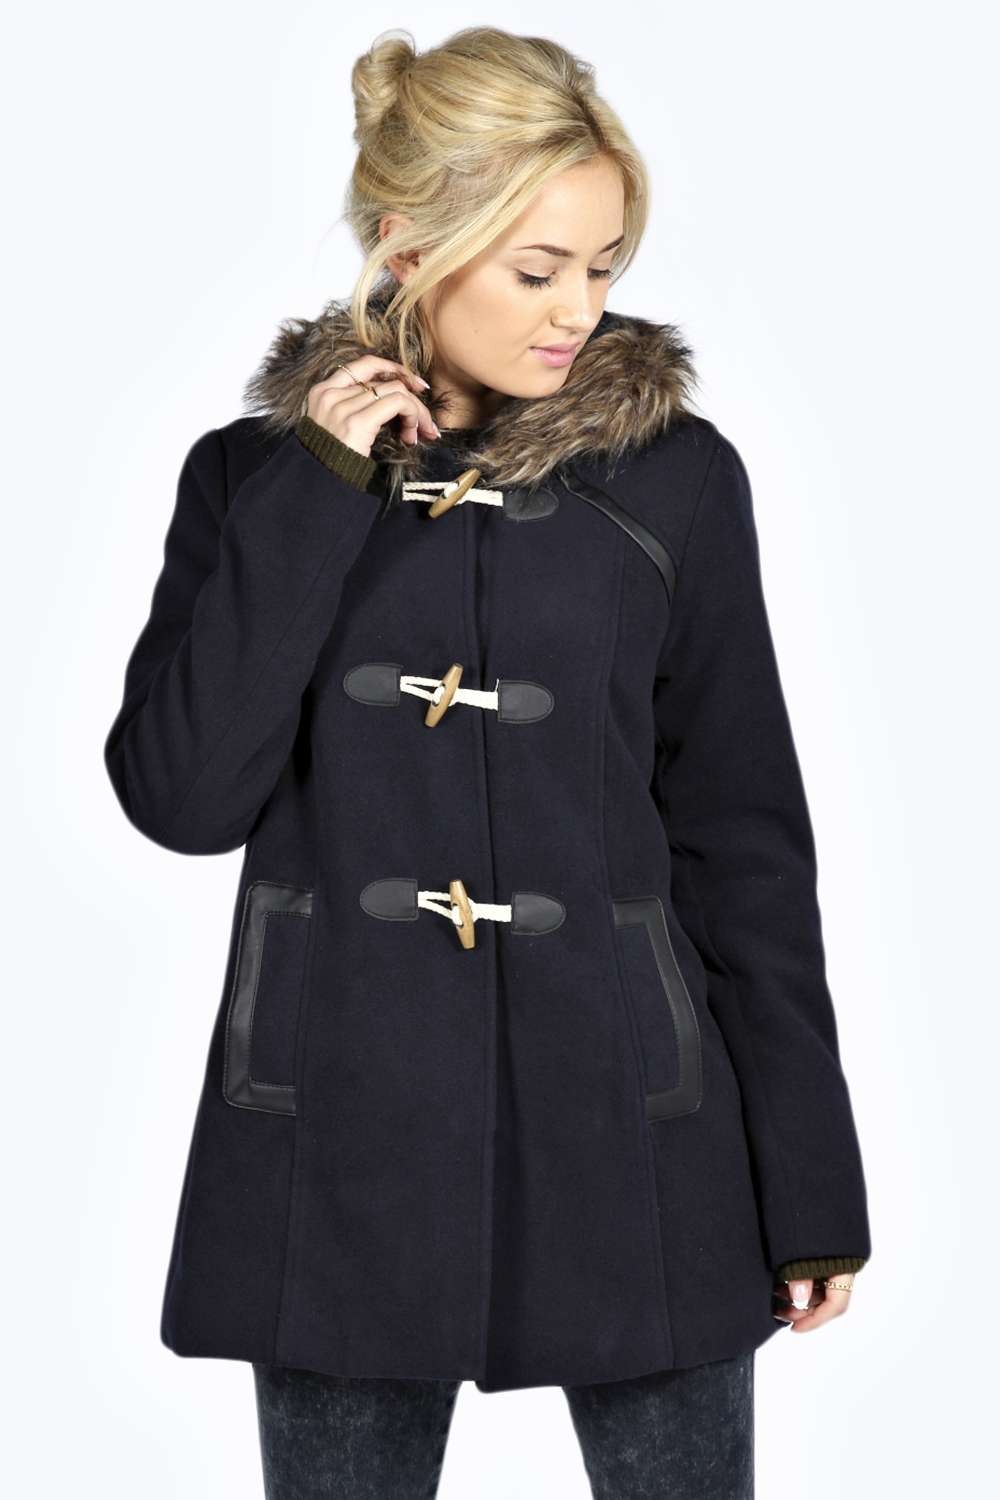 Shop women's duffle coats on sale at Eddie Bauer, a legend in American sportswear. Explore our latest selection of duffle coats for women. % satisfaction guaranteed since